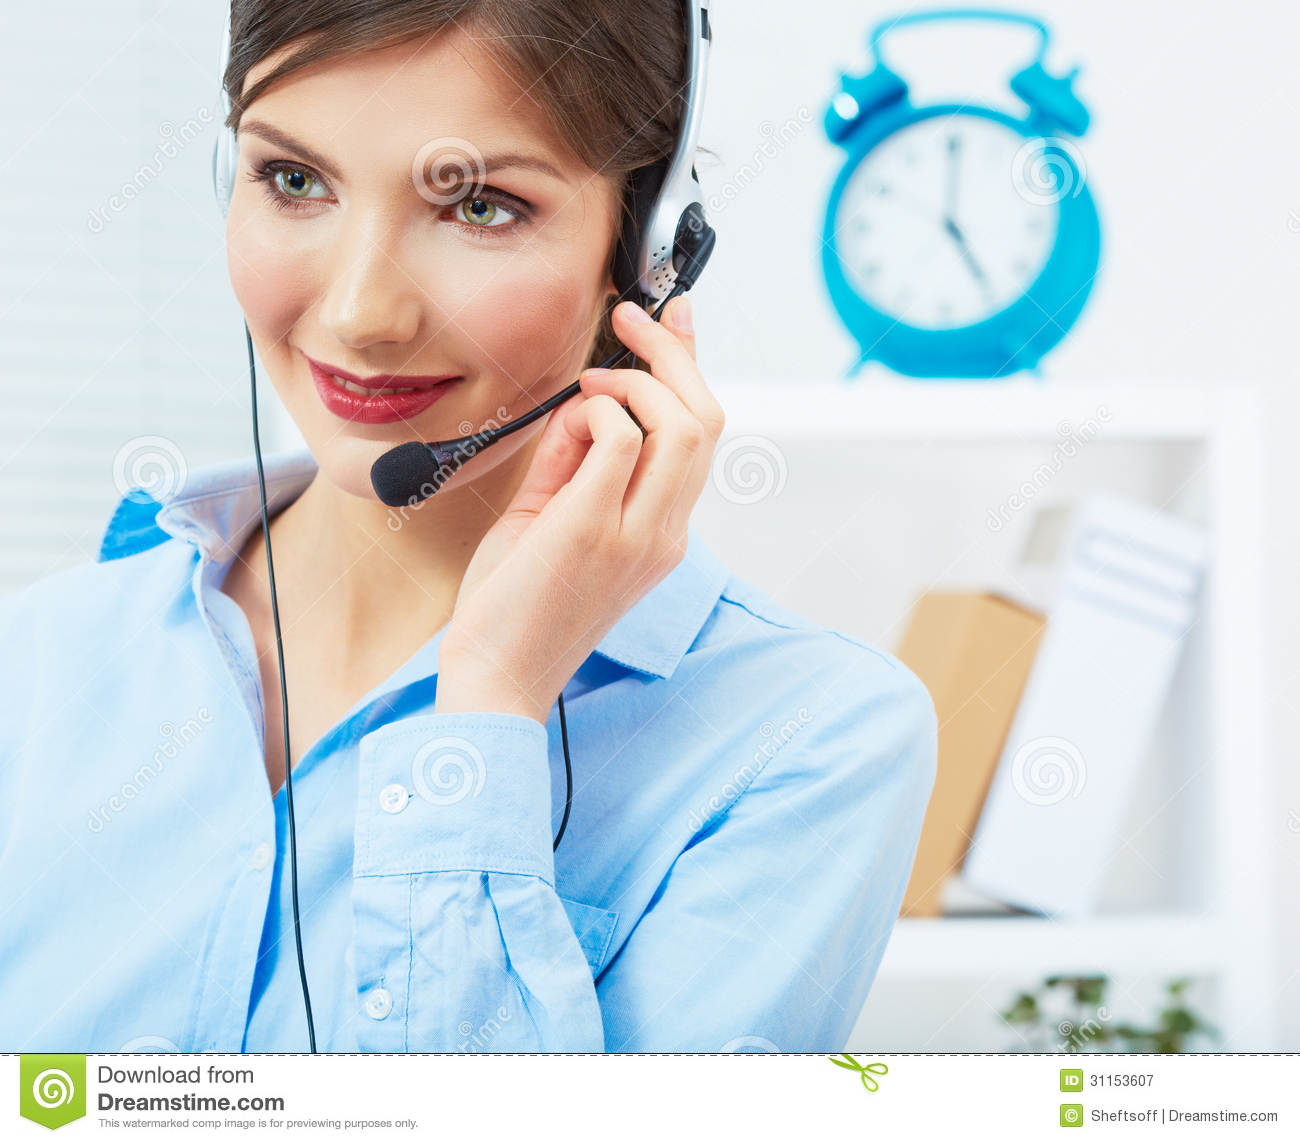 portrait of woman customer service worker call center smiling stock image image of. Black Bedroom Furniture Sets. Home Design Ideas